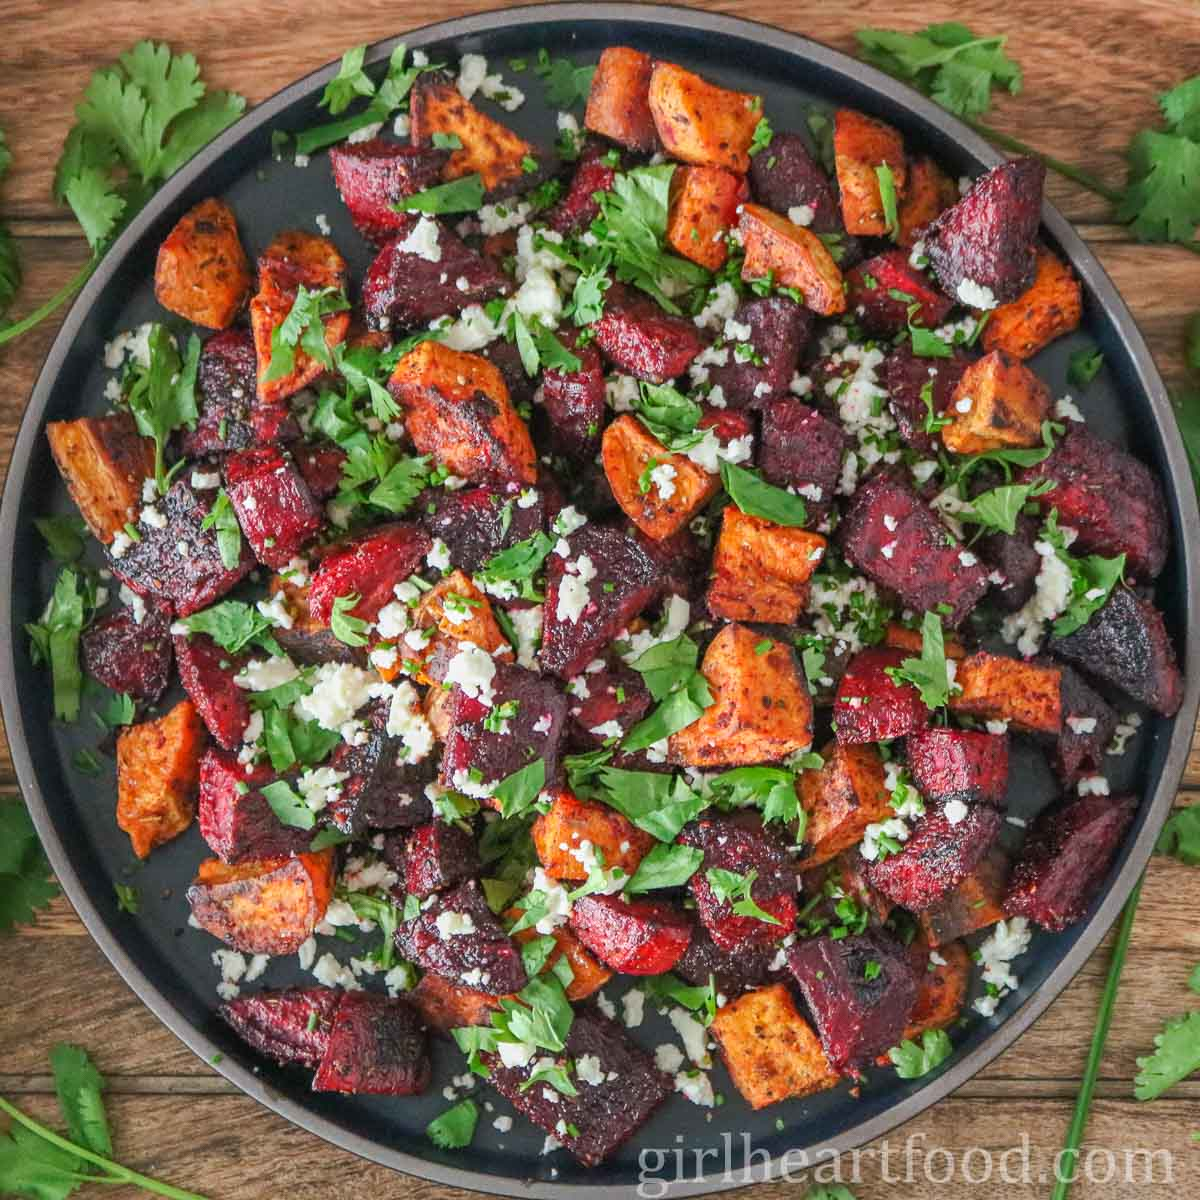 Roasted Beets And Sweet Potatoes With Feta Girl Heart Food